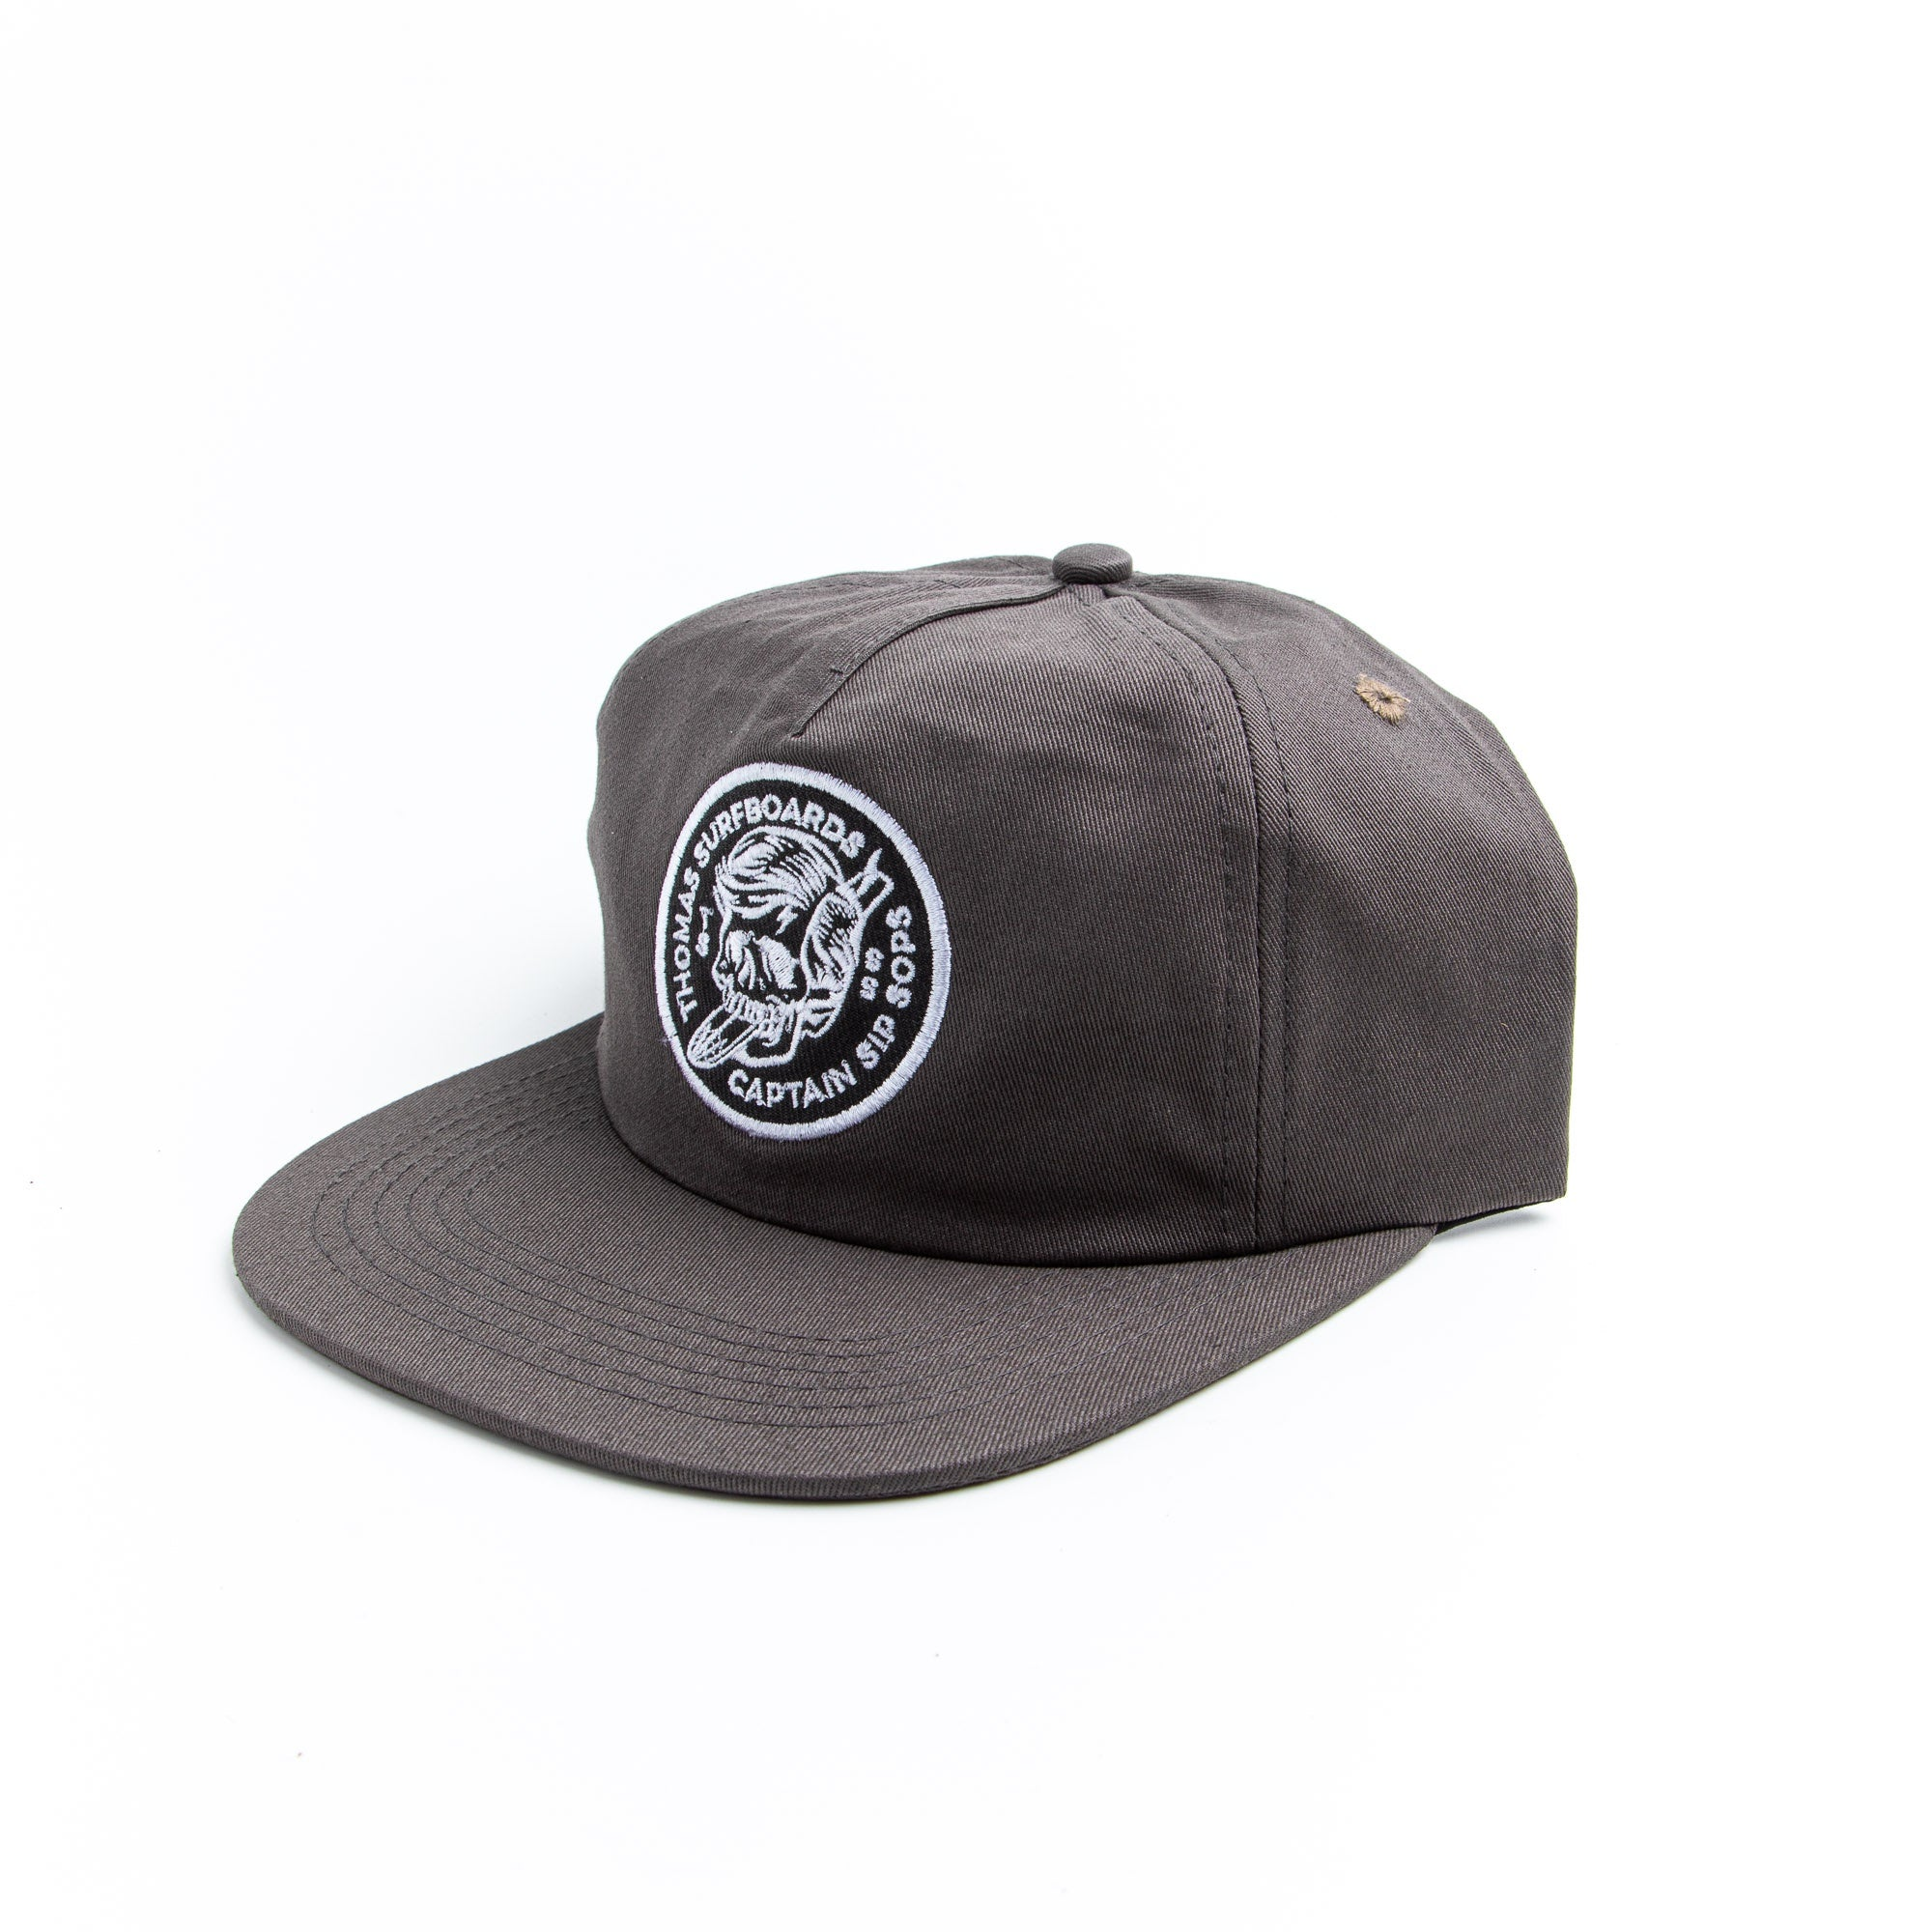 Thomas Surfboards & Captain Sip Sops Colab Stay Bold Hat Grey